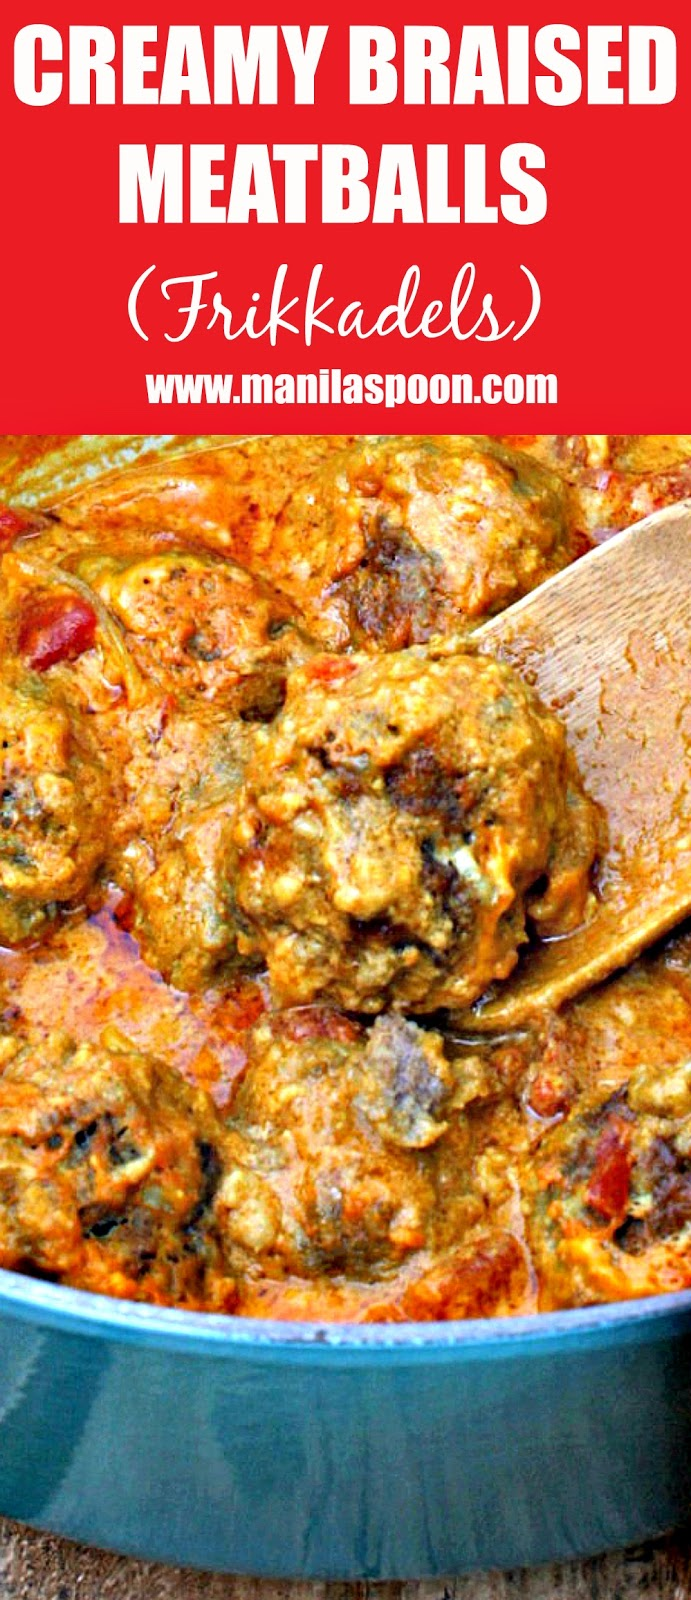 Spiced with cinnamon and coriander and then slowly simmered in a creamy tomato curry sauce make this dish so flavorful and delicious! Giant Meatballs - Frikadelles - South African Braised Meatballs - this is absolutely yummy! #frikadelles #braised #meatballs #southafrica #frikkadels